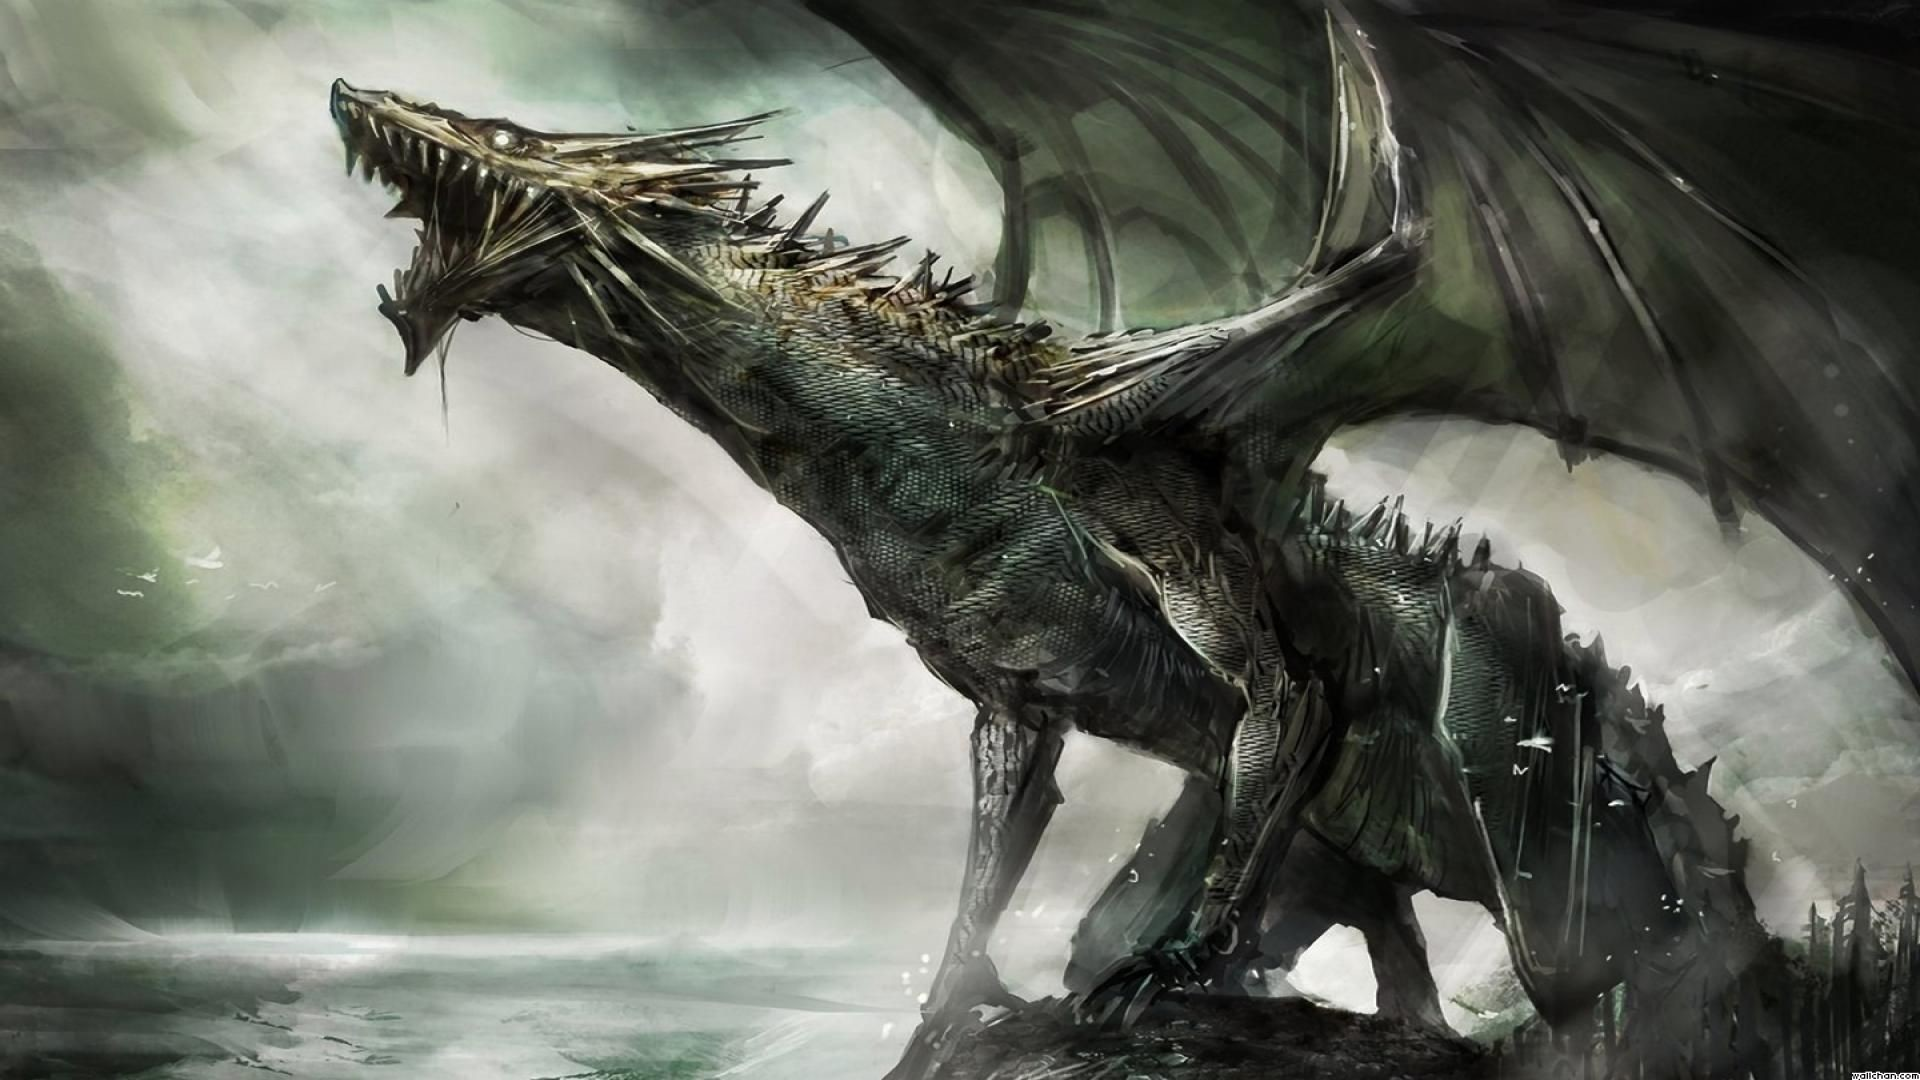 Res: 1920x1080, images-for-gt-cool-dragons-wallpaper-hd-awesome-